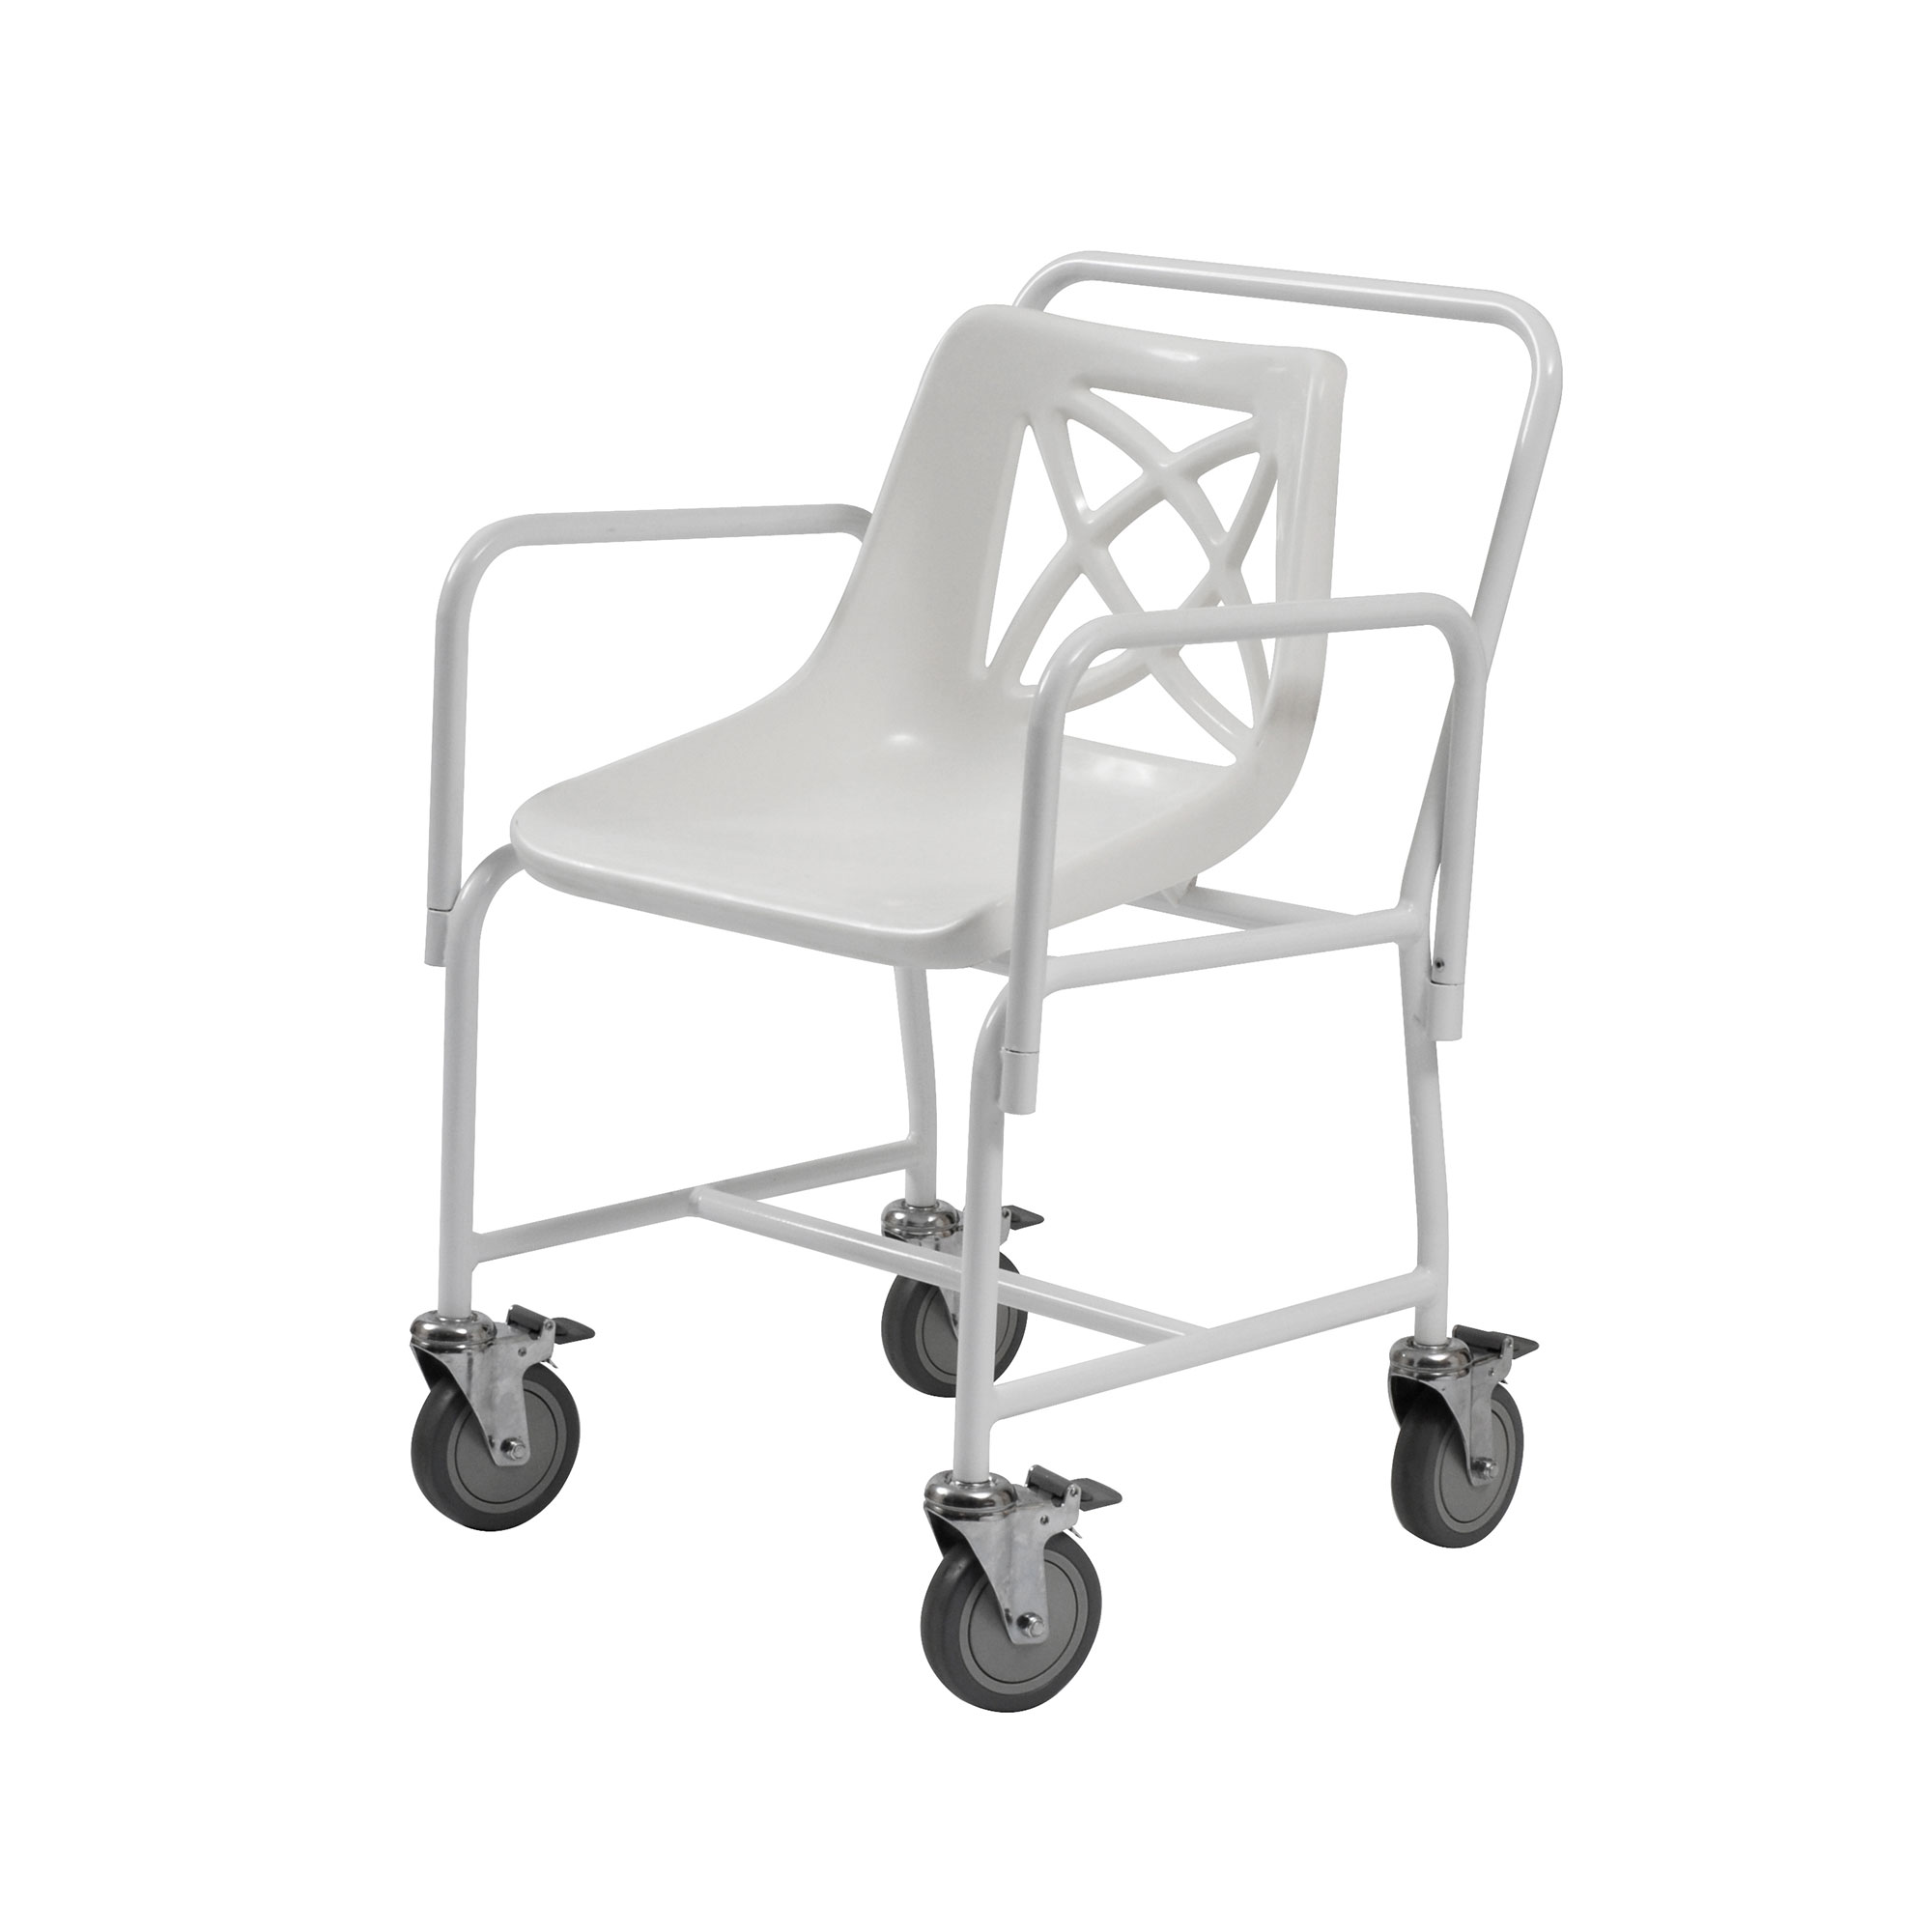 4551 4bc mobile shower chair with detachable arms roma medical